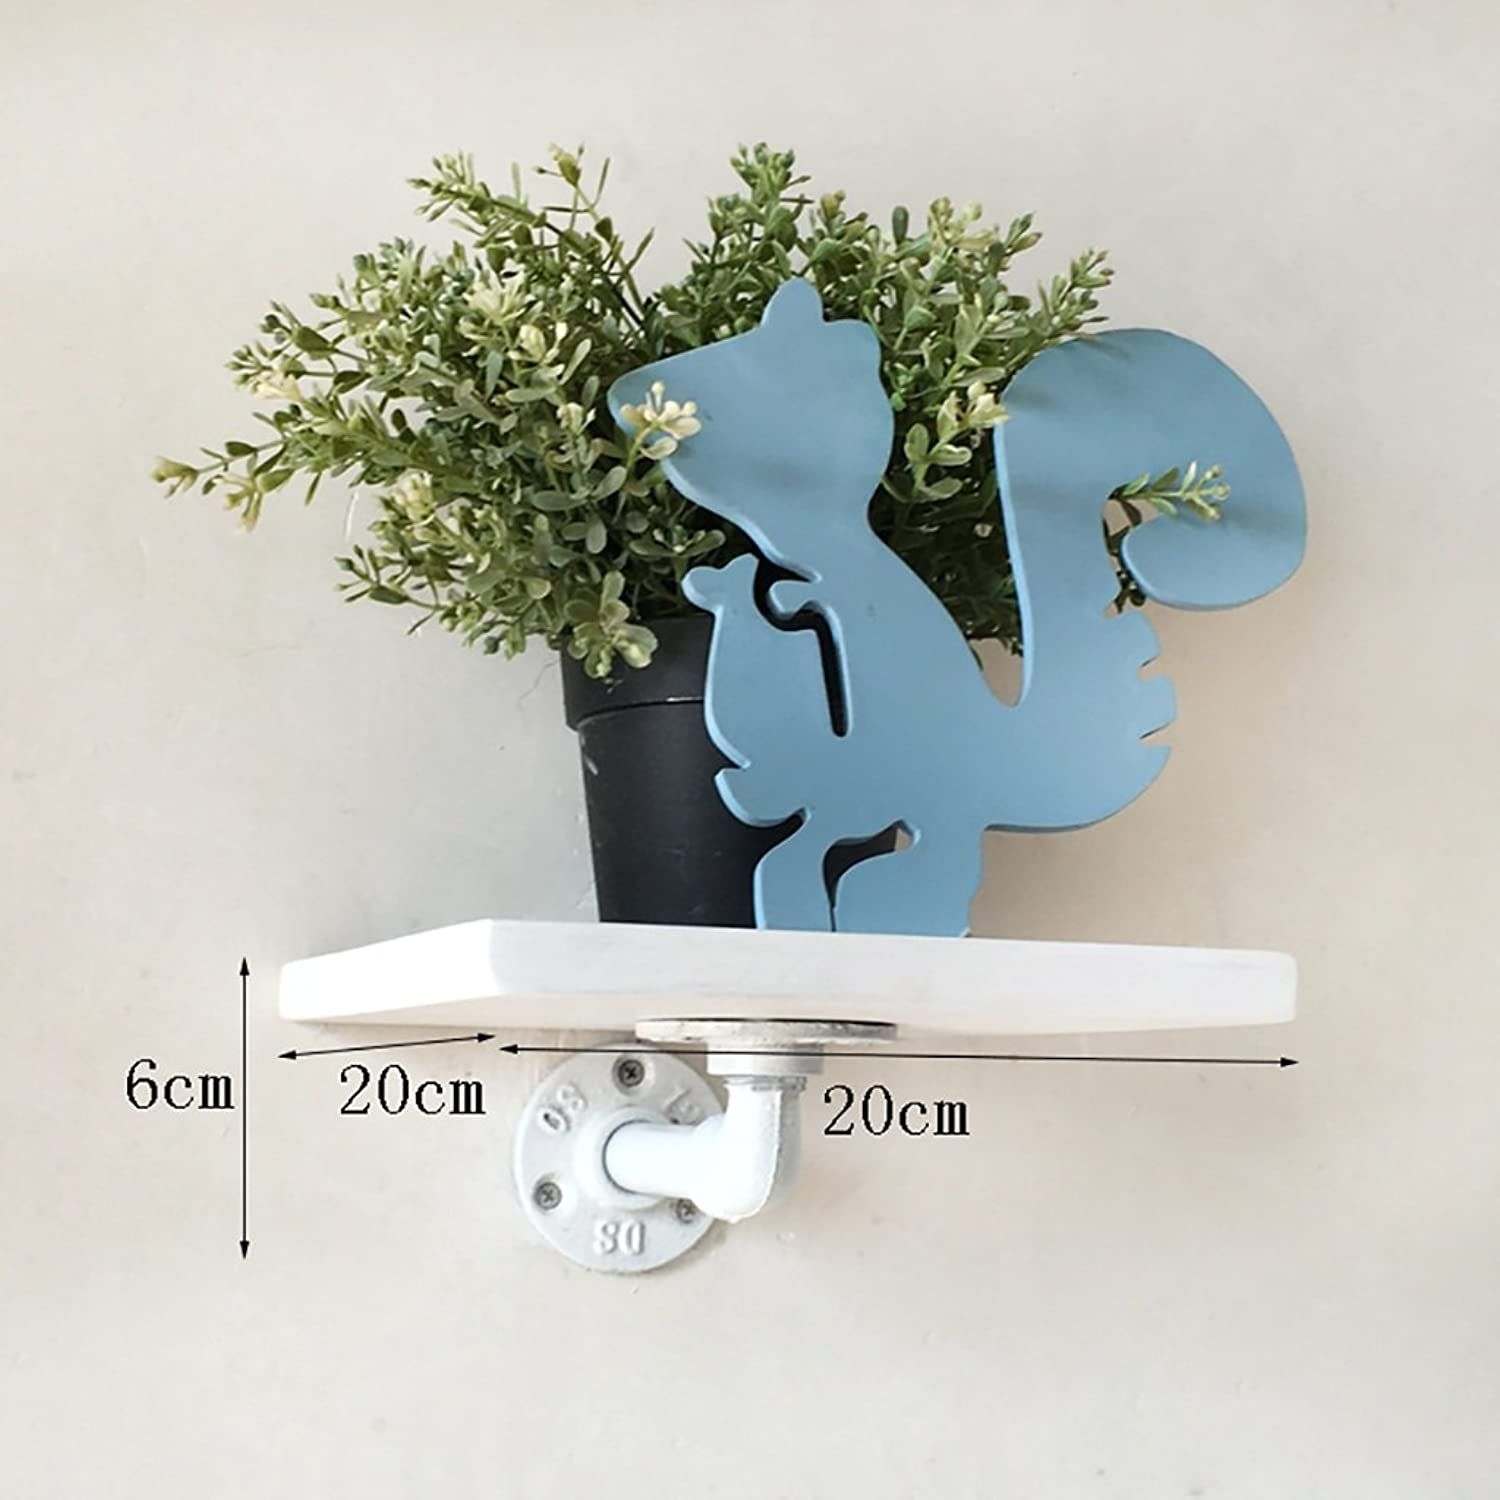 Decorative Accessories Wall Mounted Shelves LOFT Retro Iron Water Pipe Bookshelves Potted Display Stand Living Room Background Wall Decoration Shelves Floating Shelves (color   C20206CM)